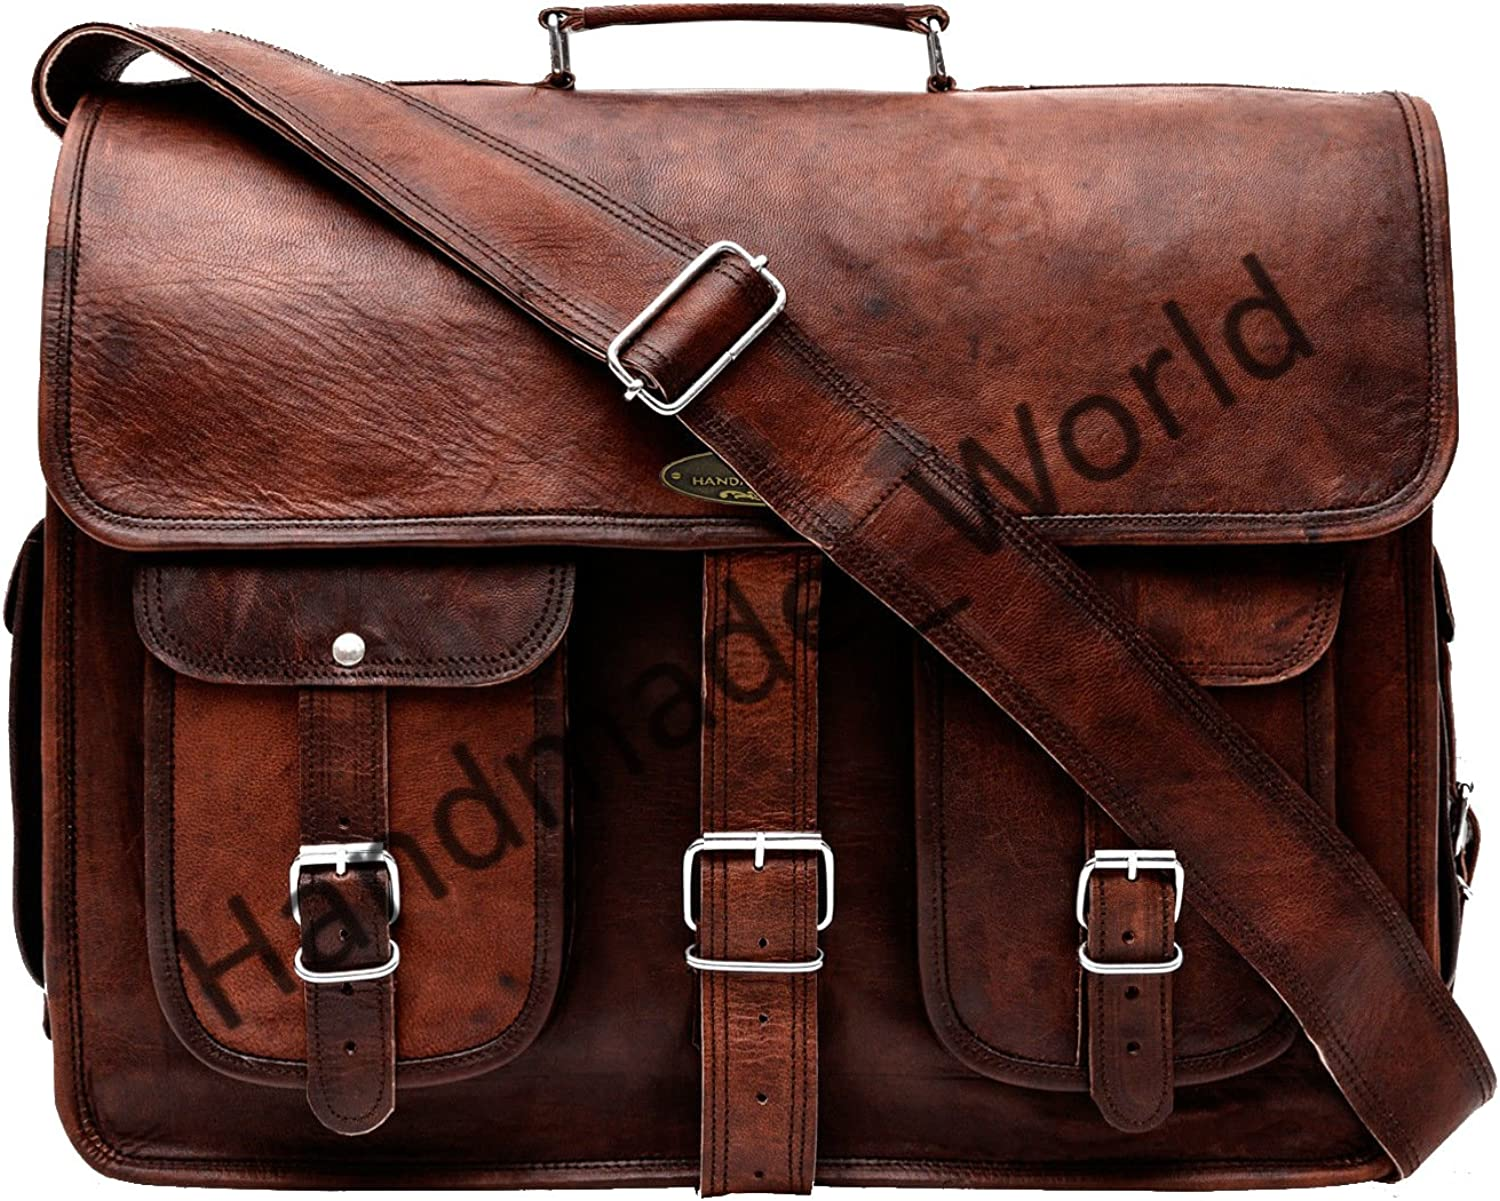 Handmade World Leather Messenger Bag 16 Inch Brown Air cabin Briefcase Leather Cross body Shoulder Large Laptop School bag 12 X 16